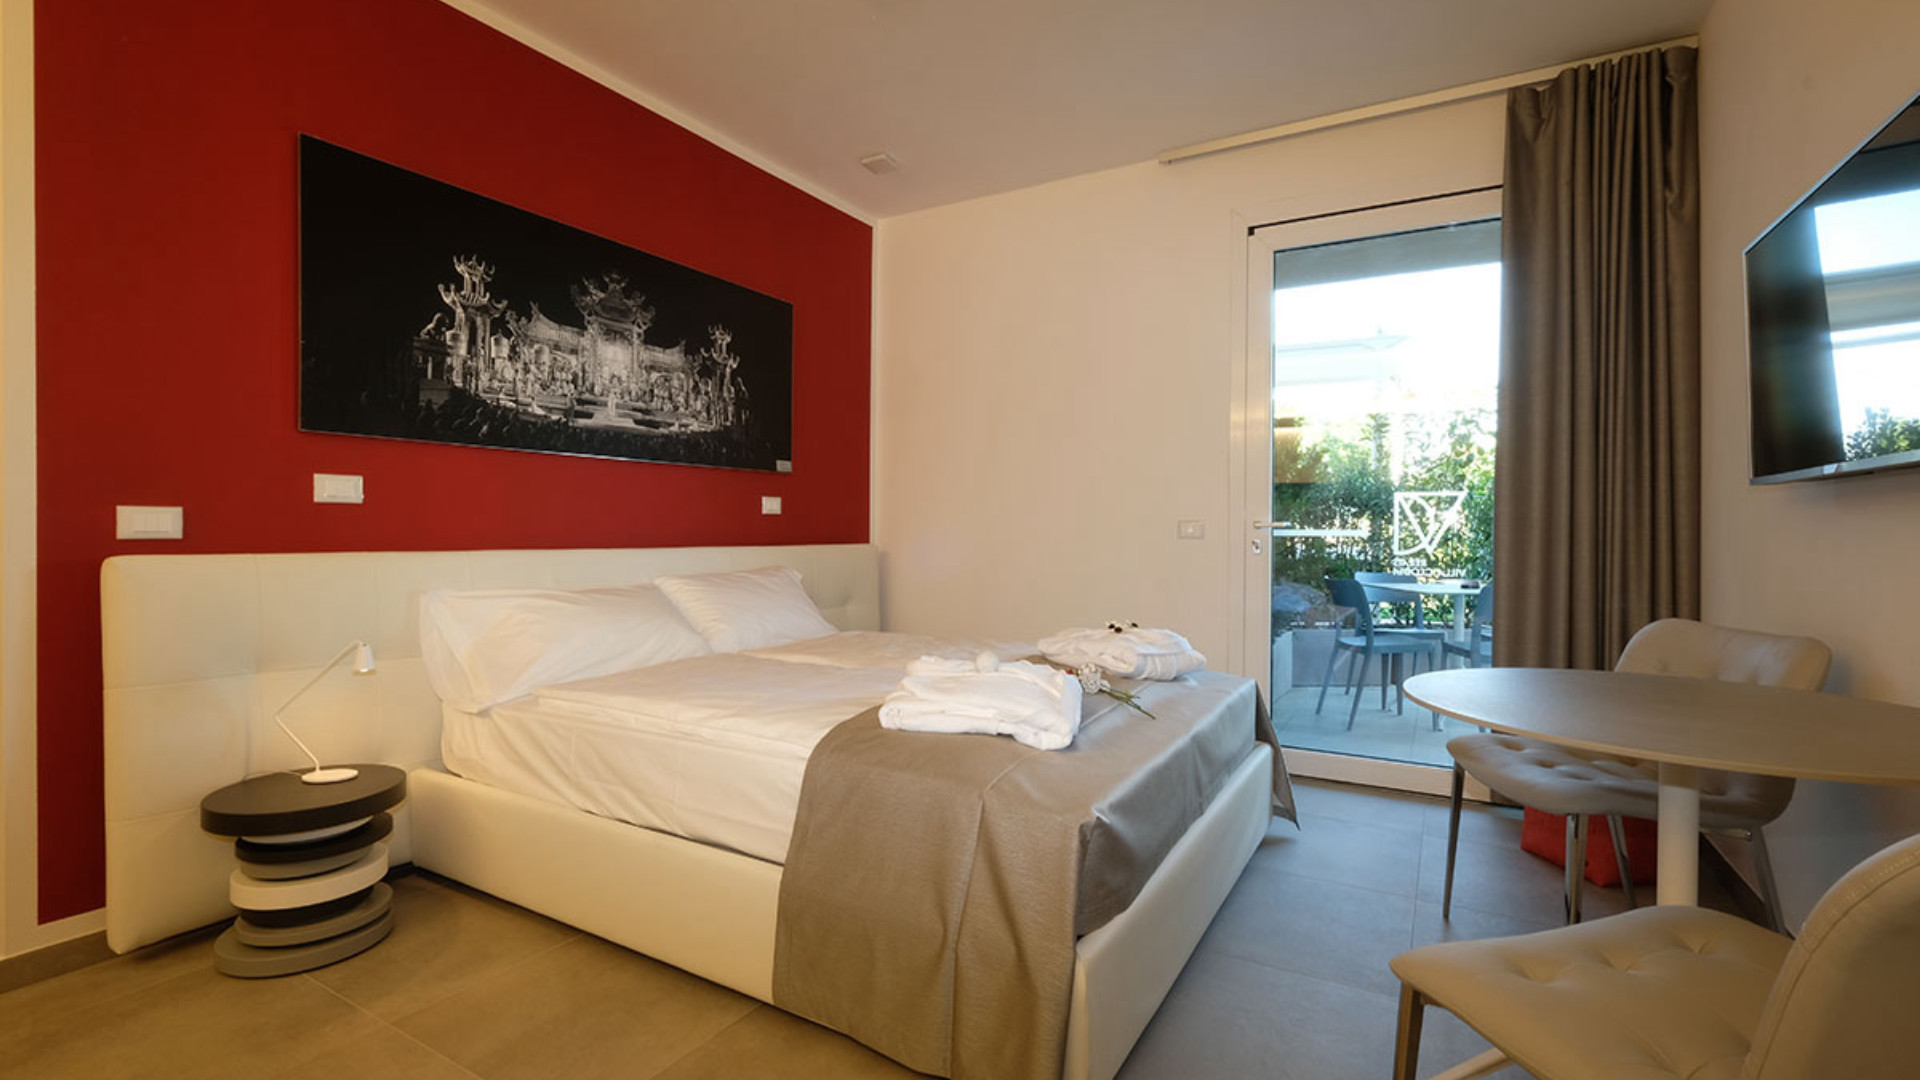 Maximum accessibility for everyone at the elegant and comfortable barrier-free apartment at Villa Clodia: for a carefree stay.